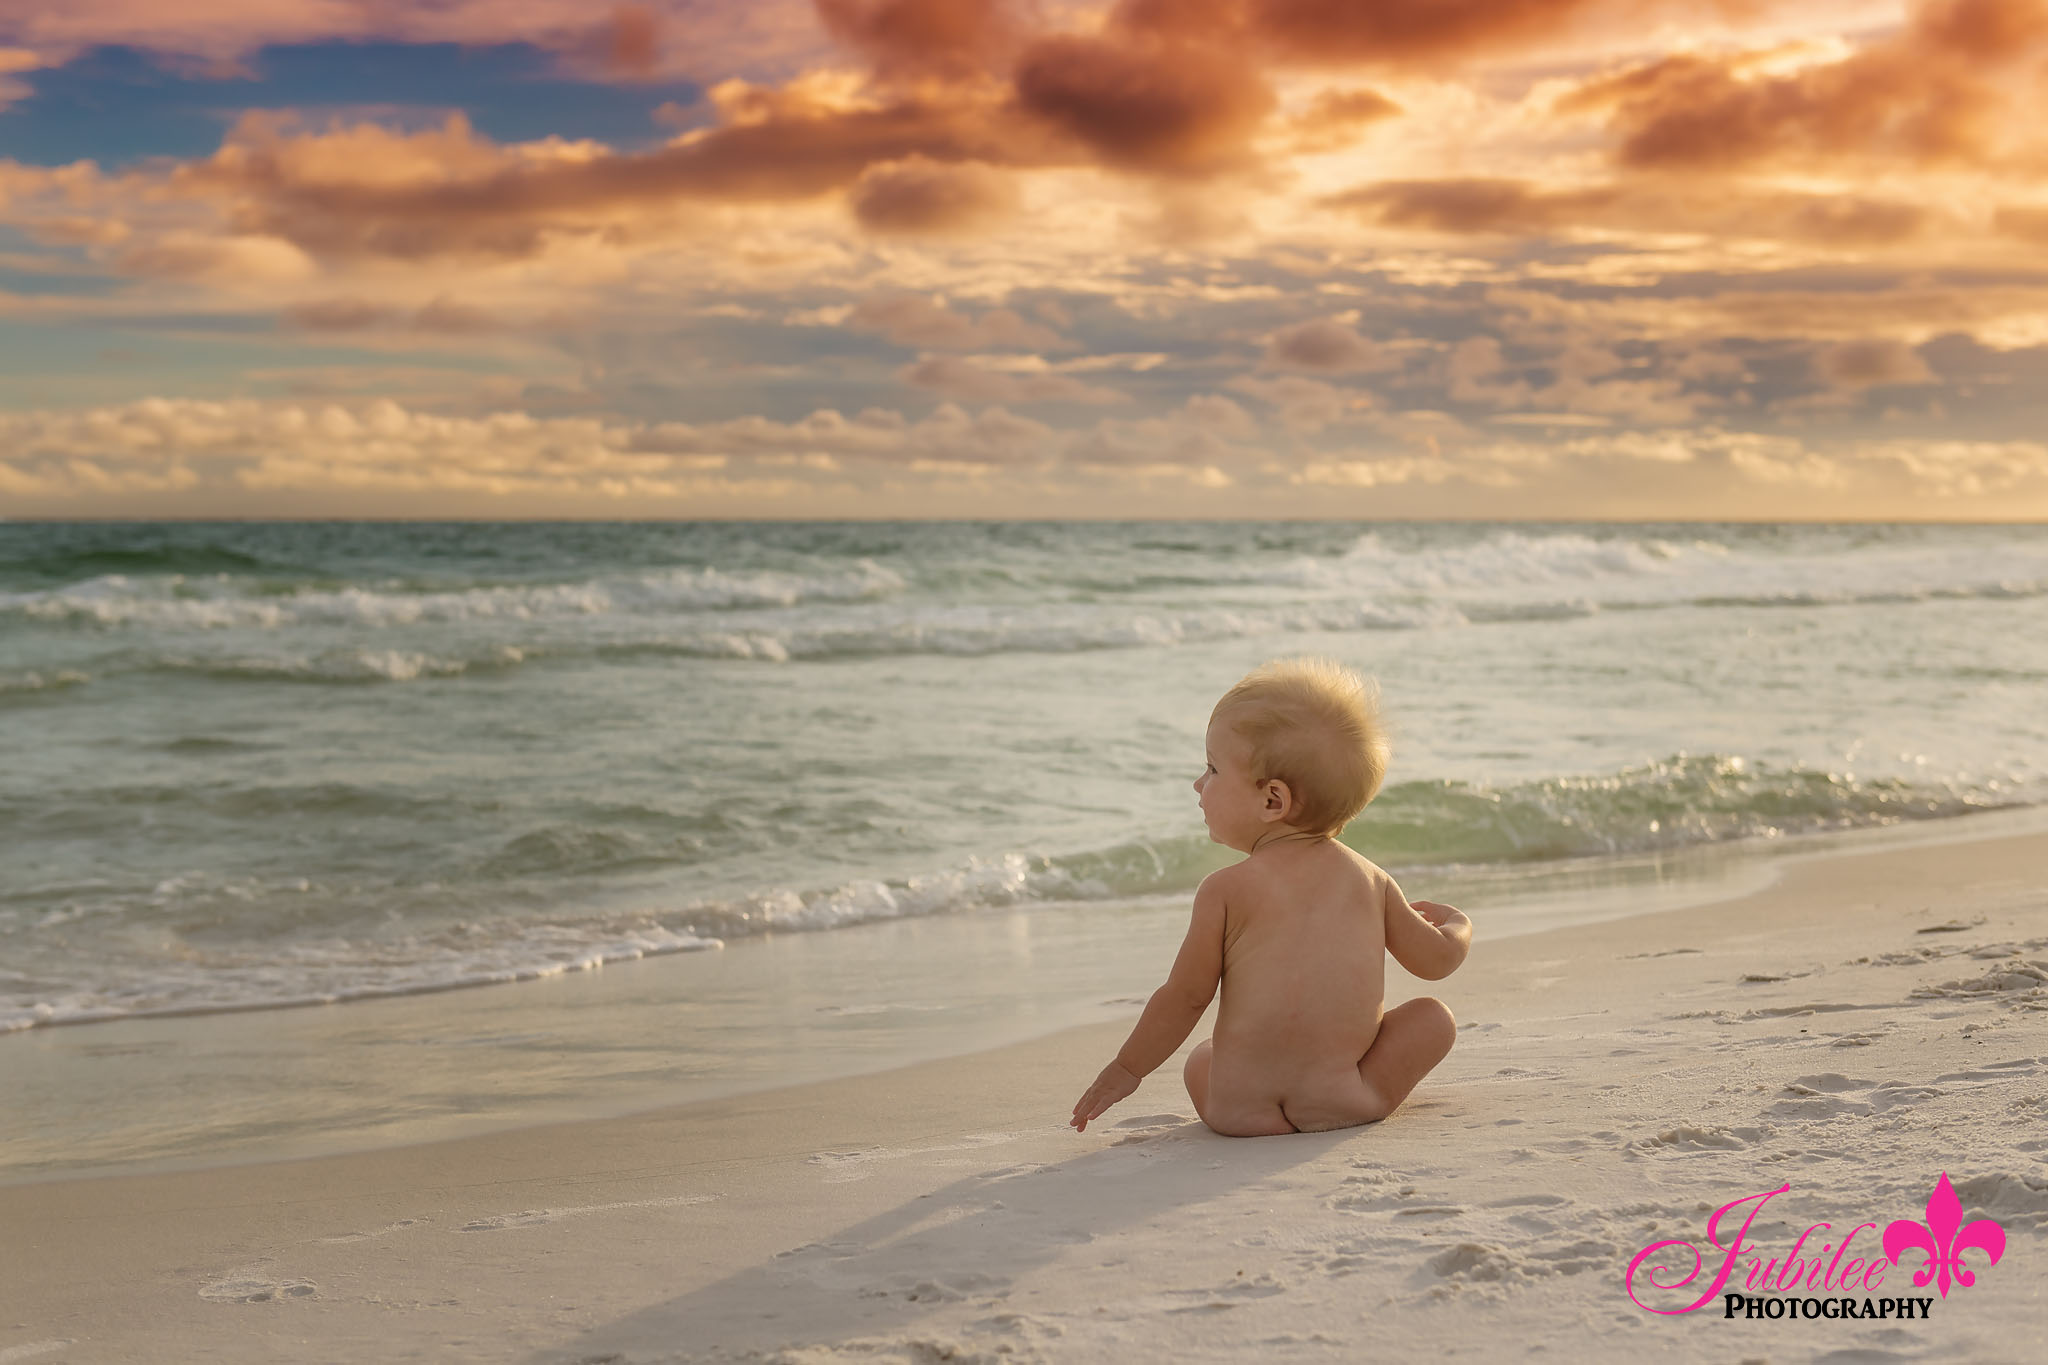 destin_beach_photographer_6220